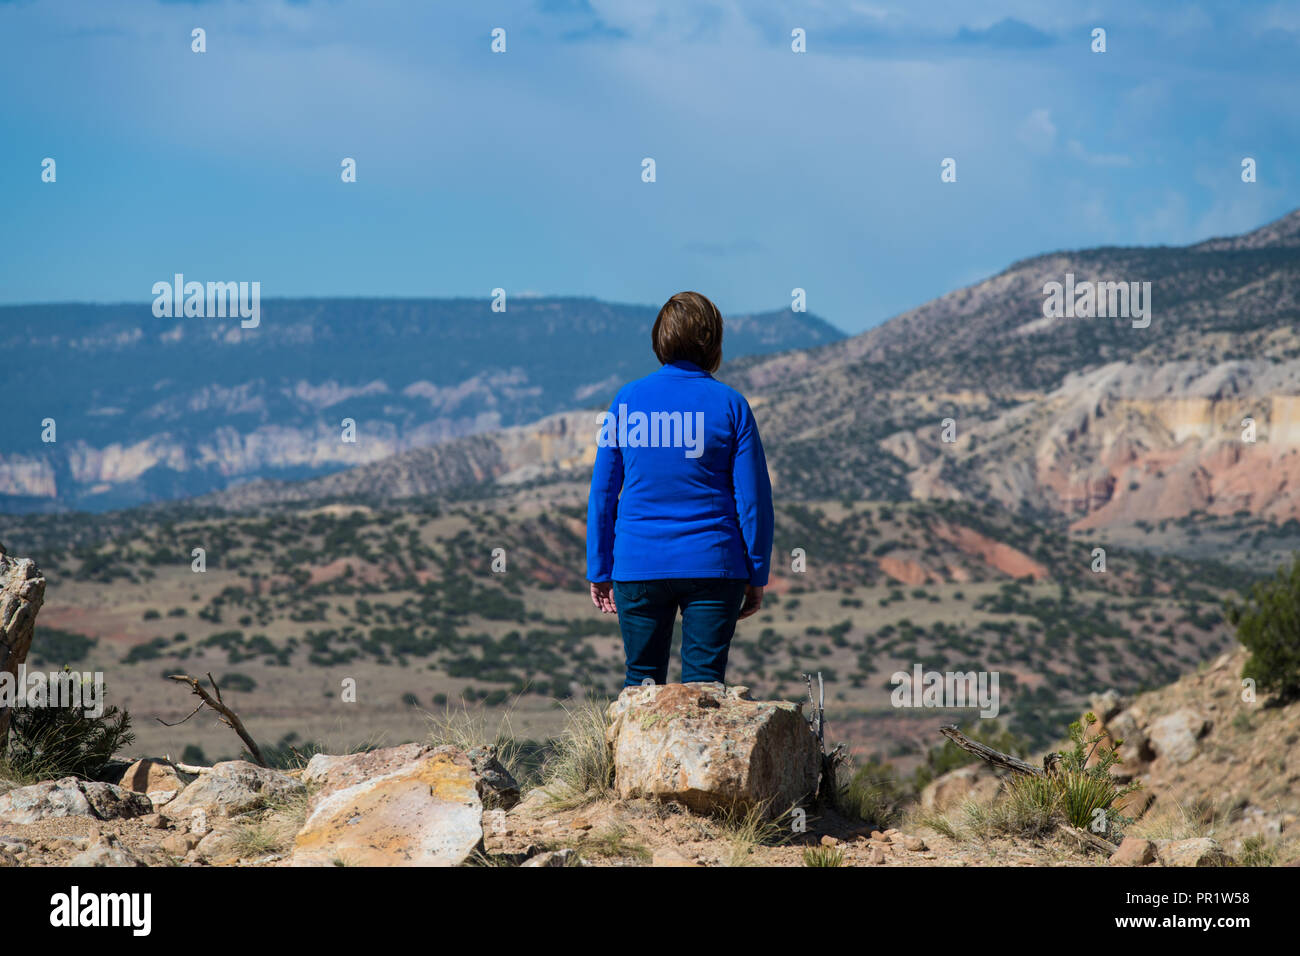 Woman wearing a blue fleece pullover looking out over a vast colorful landscape and stormy clouds in the American Southwest - Stock Image